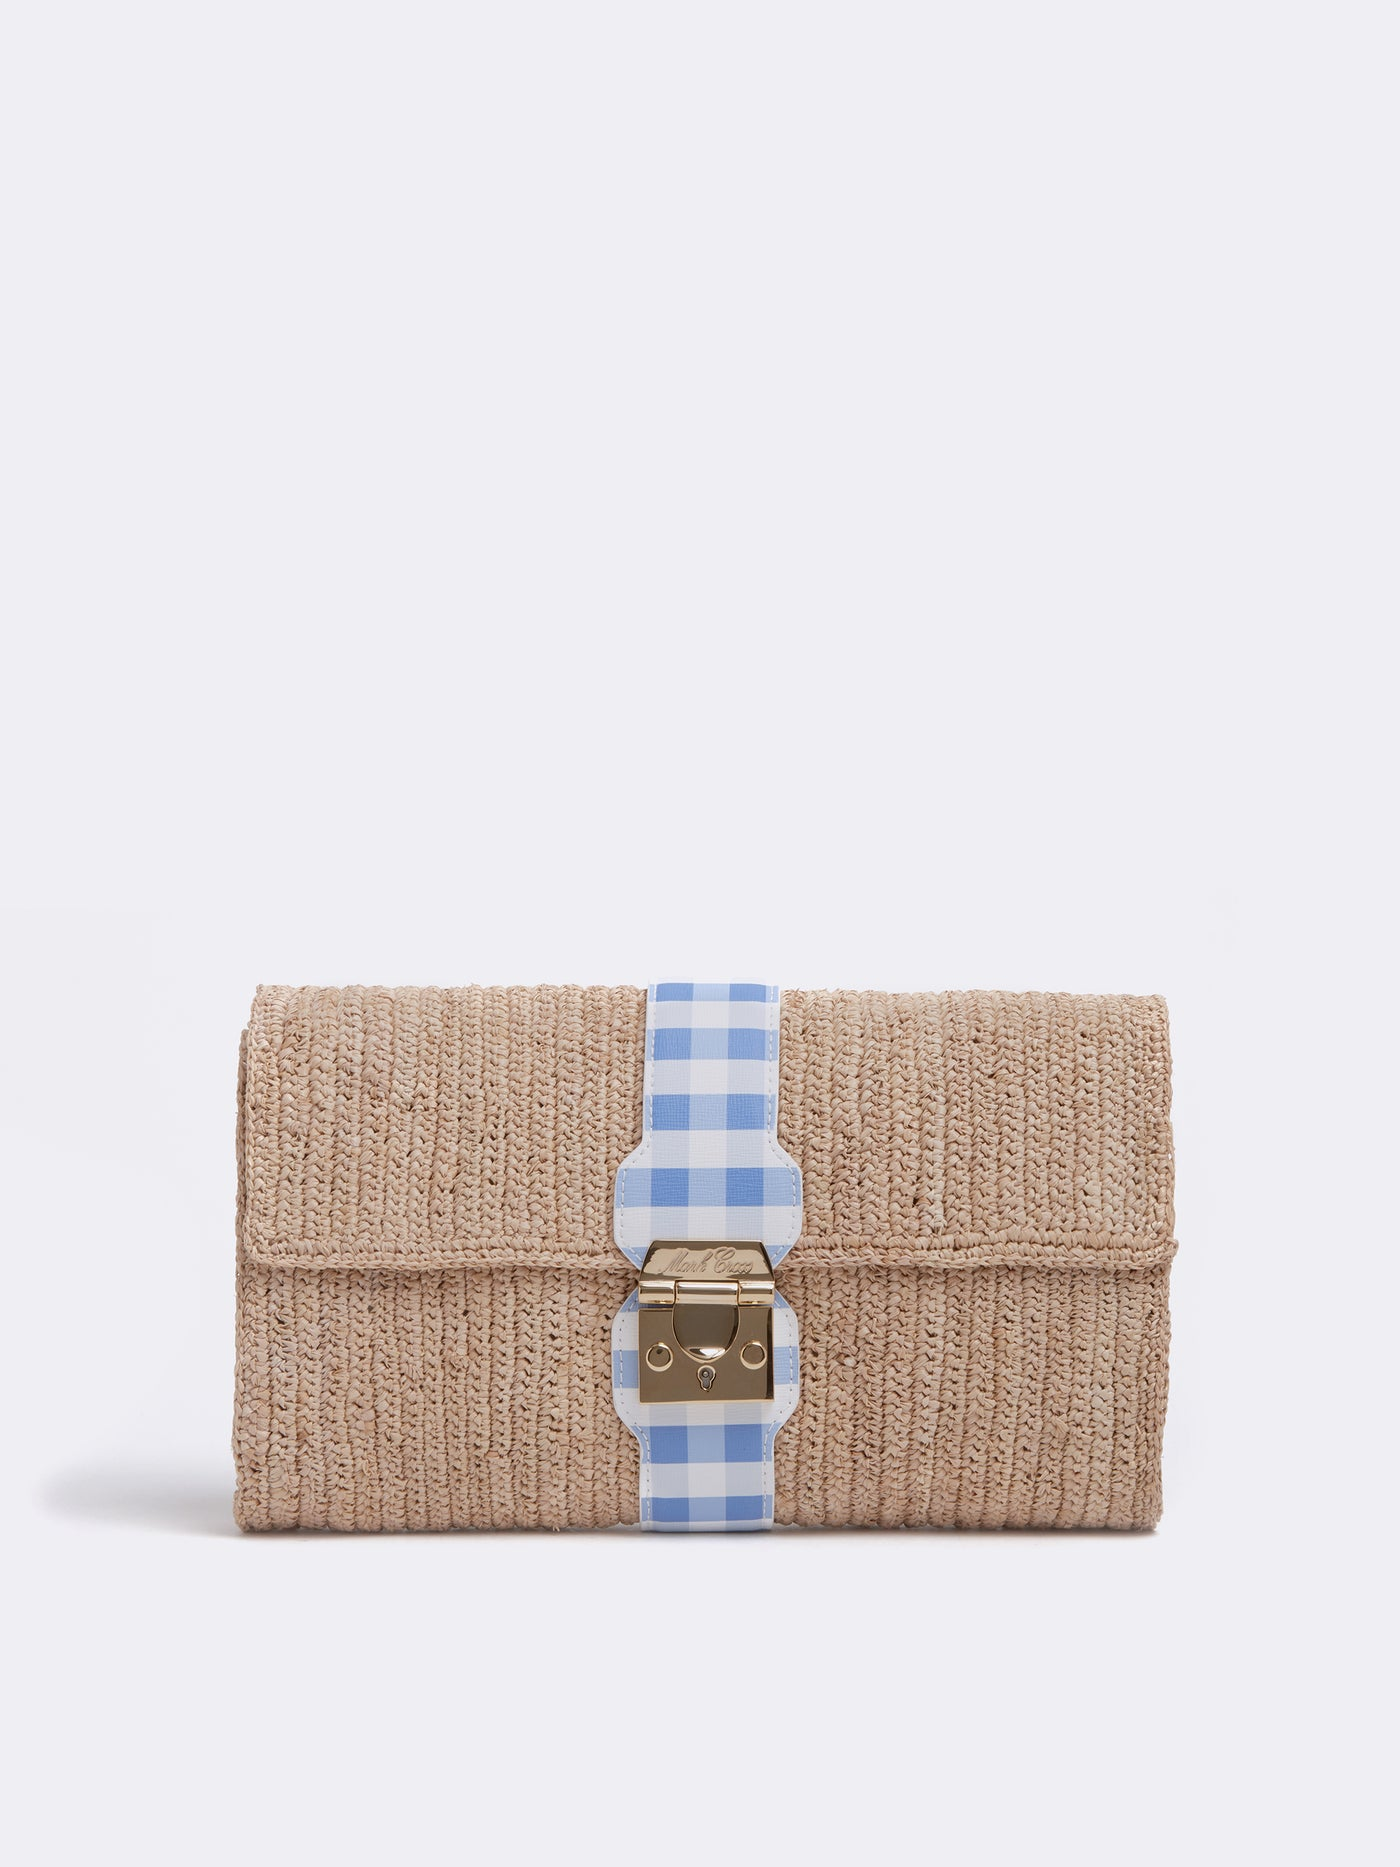 Sylvette Raffia & Leather Clutch